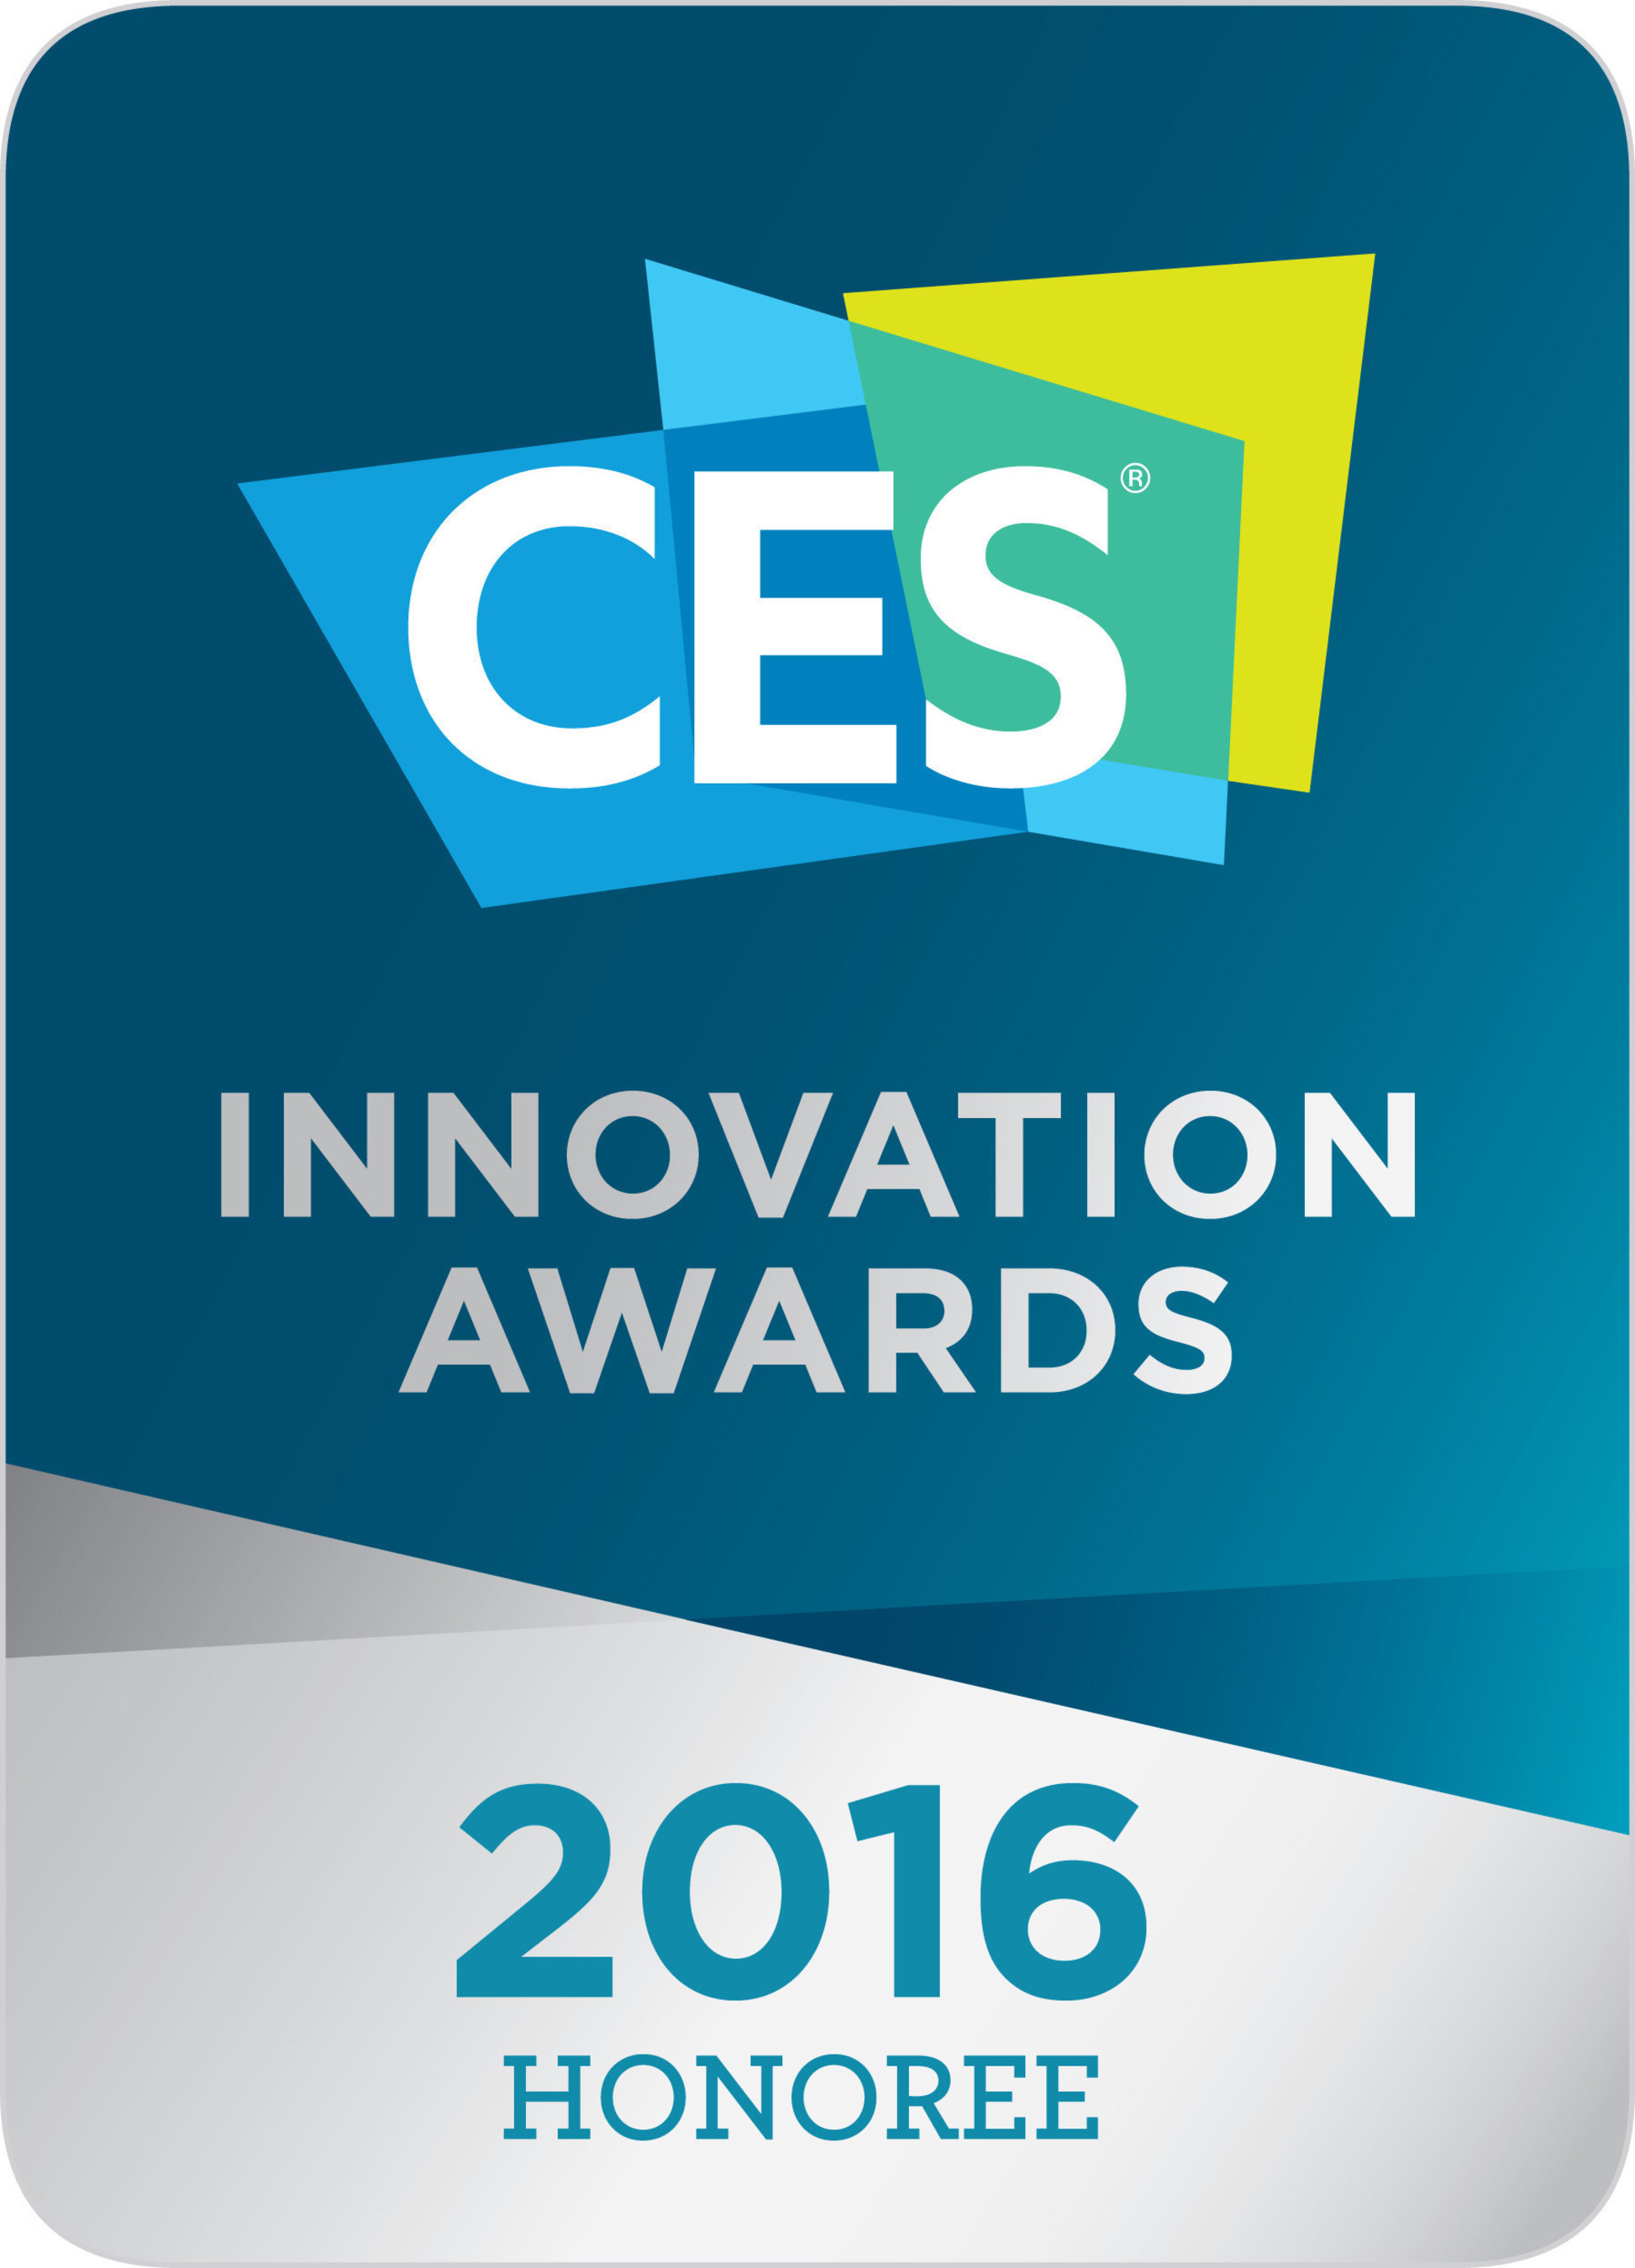 Telematics giant Teletrac Navman honored with 2016 CES Innovation Award